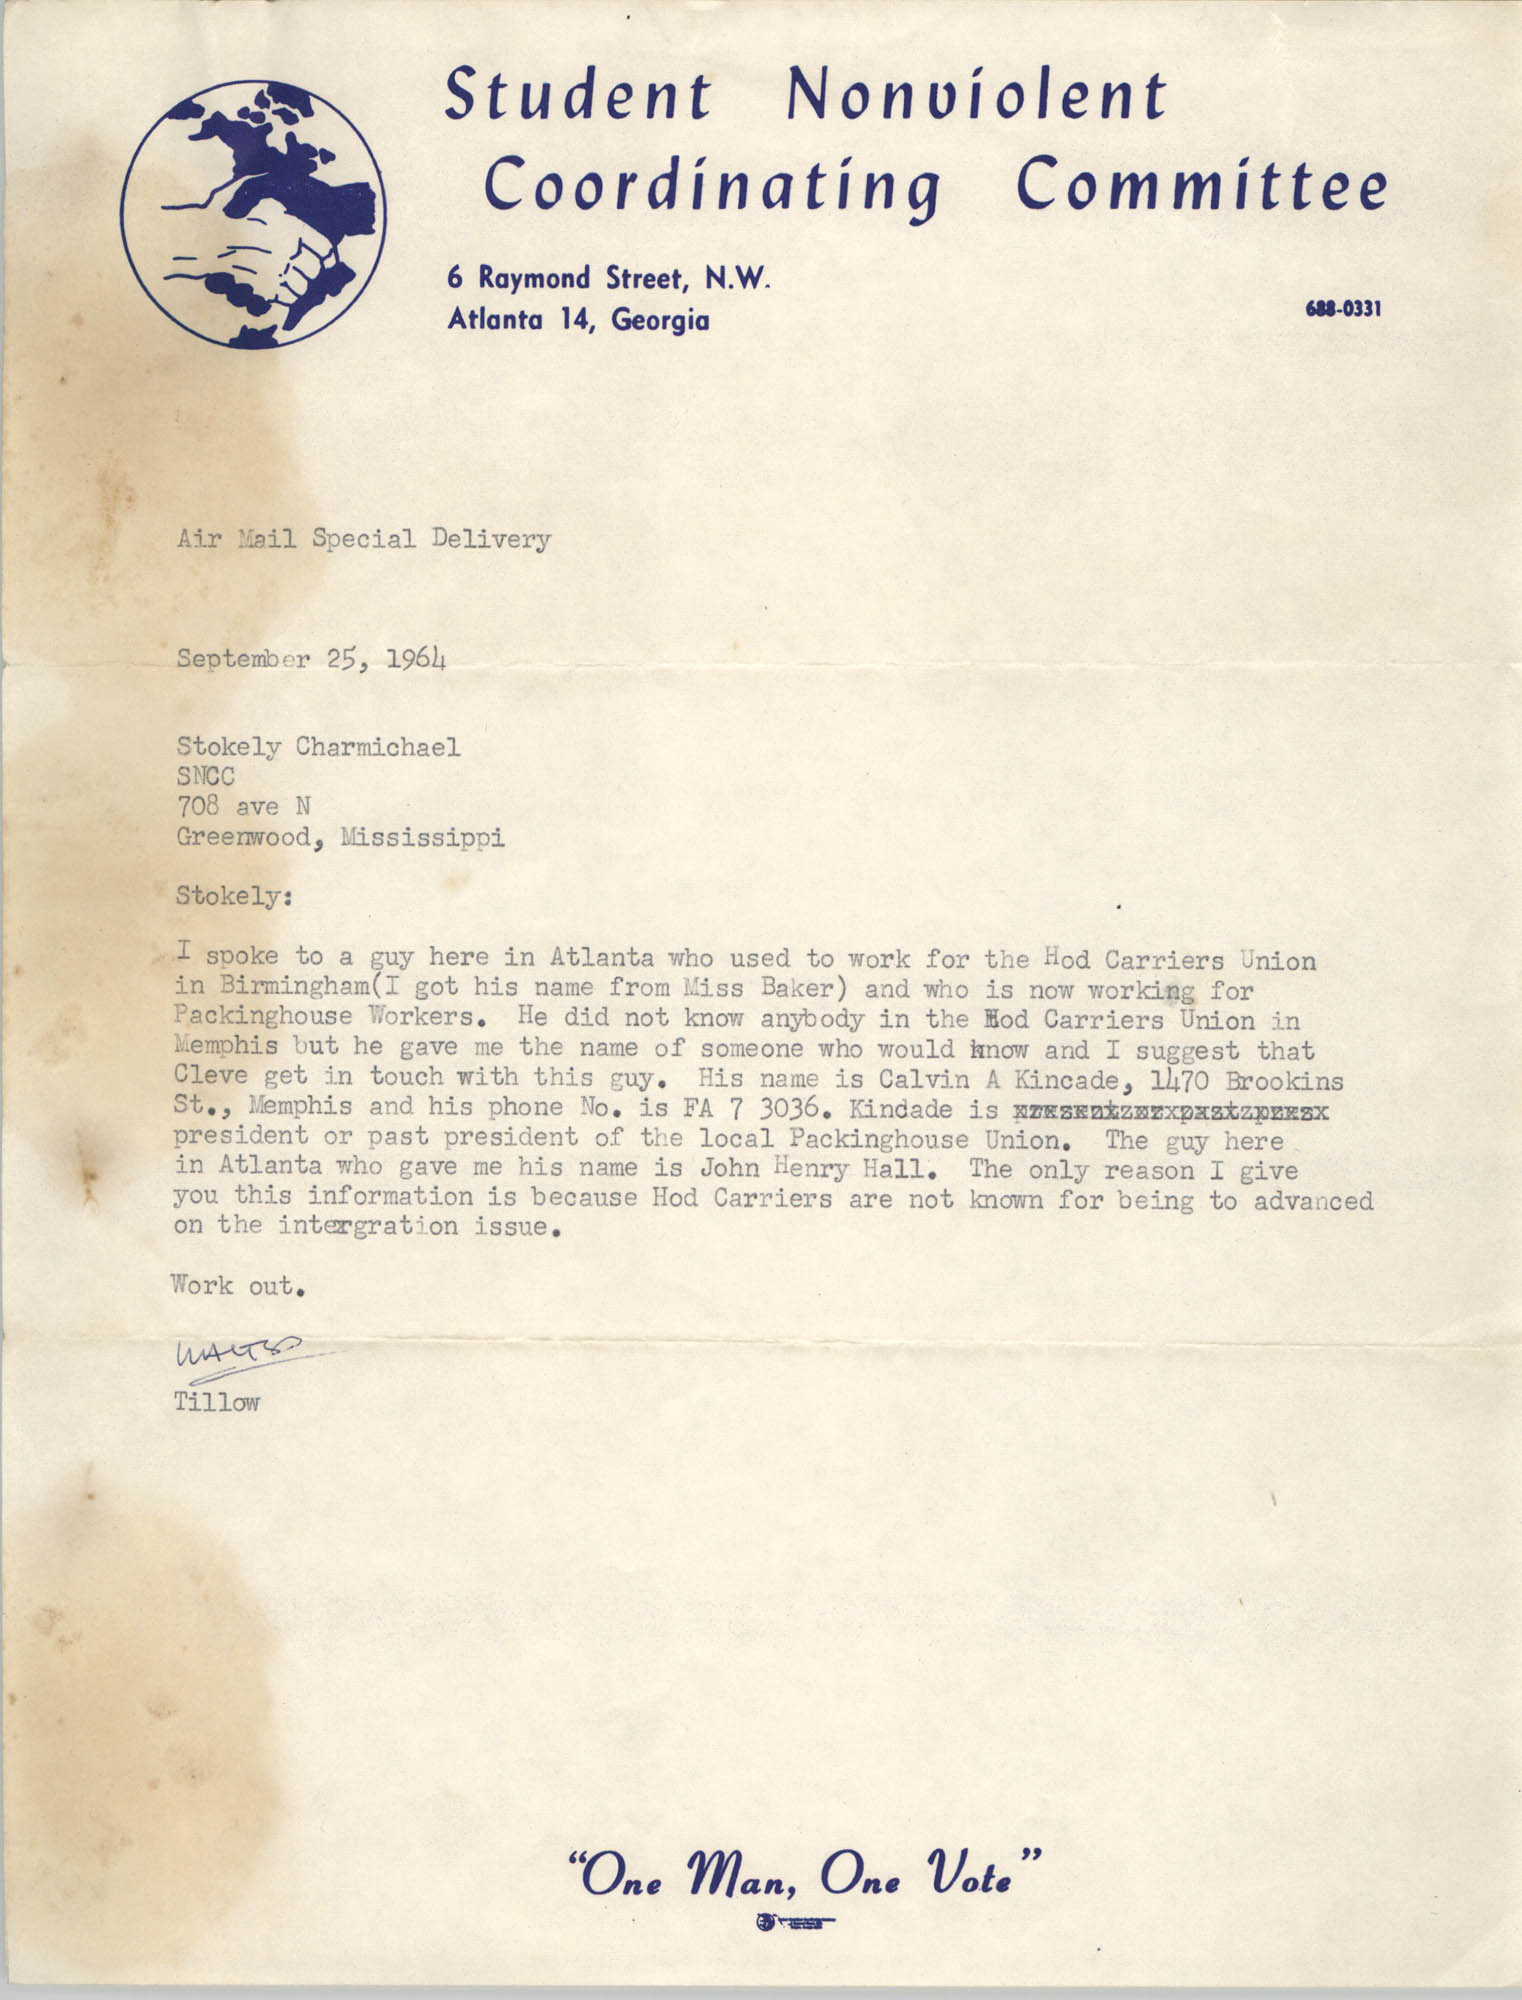 Letter from Walter Tillow to Stokely Carmichael, September 25, 1964